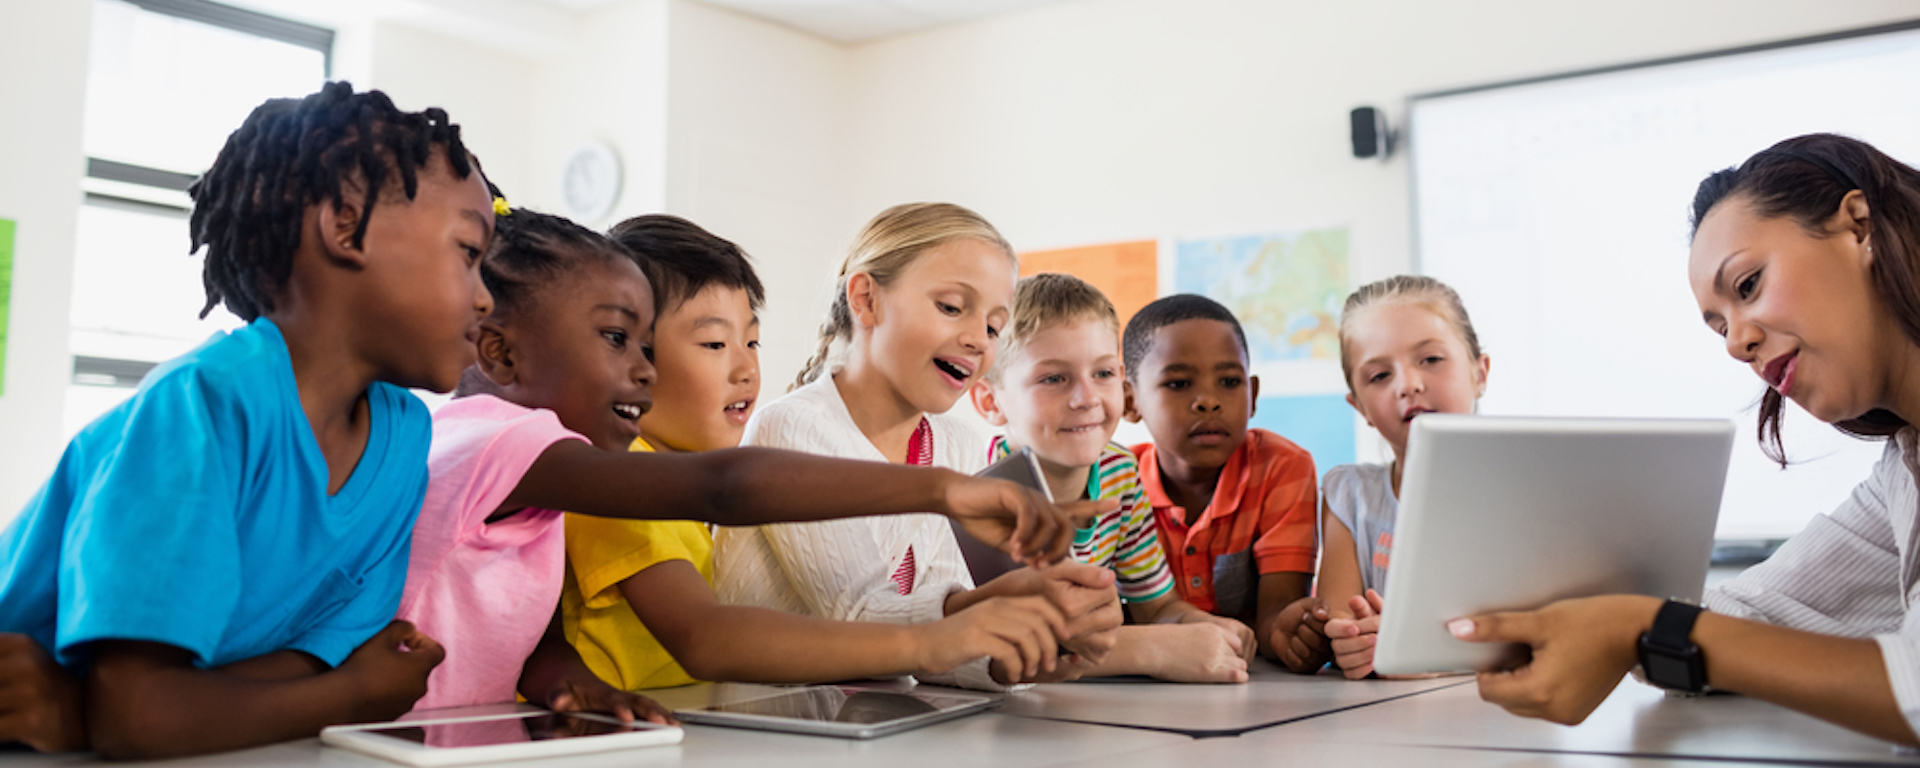 the importance of balancing classroom technology use